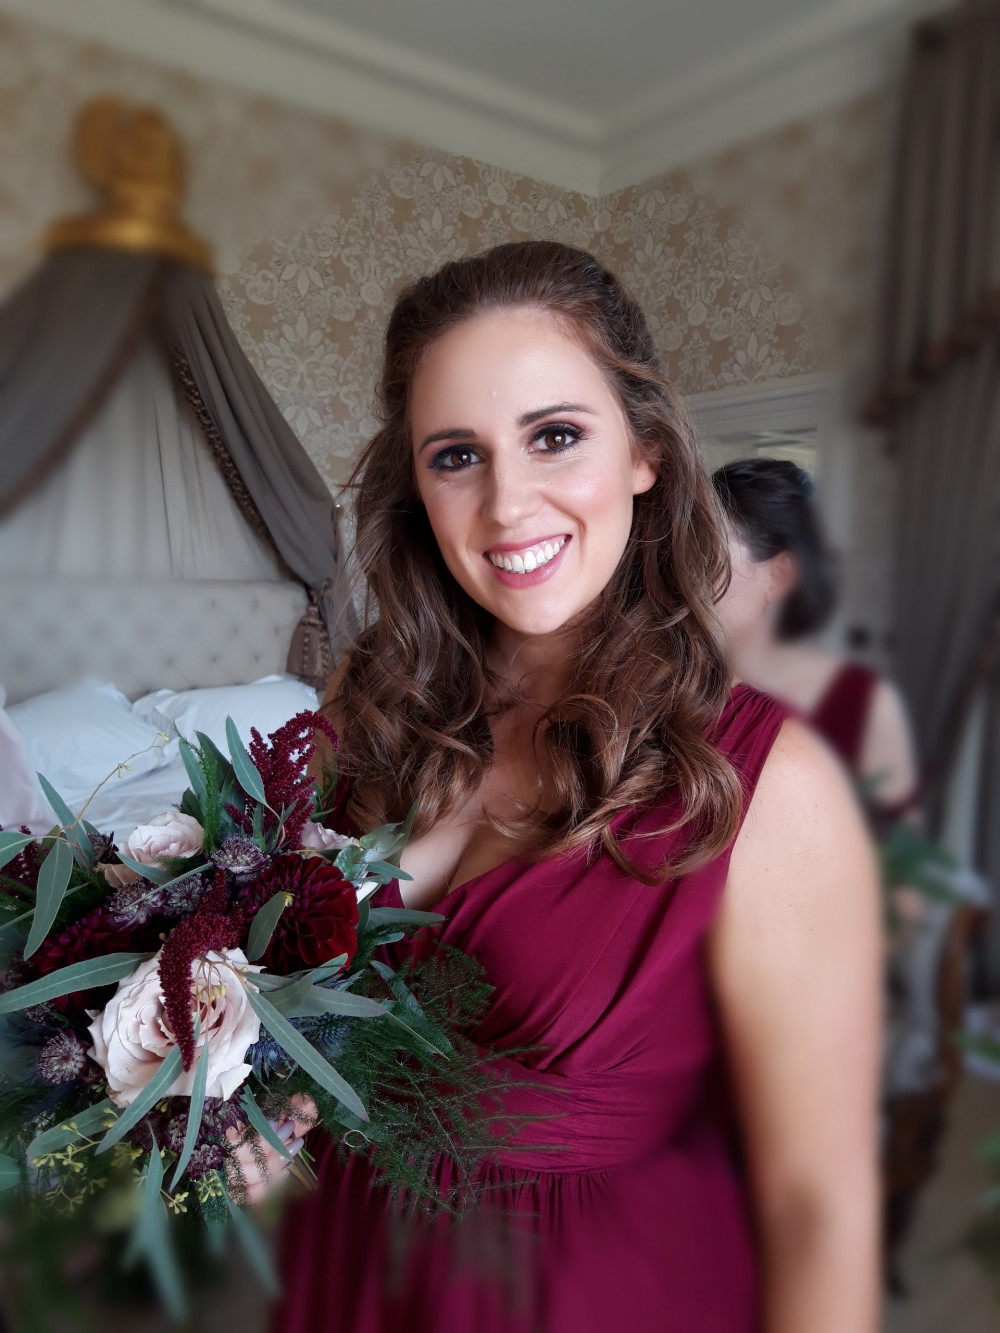 A glamorous wedding in Couldray House where this bridesmaid chose glam makeup and hair. Photo taken by Samsung mobile phone - Make Me Bridal Artist: Viktoria Kohl Makeup and Hair. #bridesmaidhairandmakeup #glam #glamourous